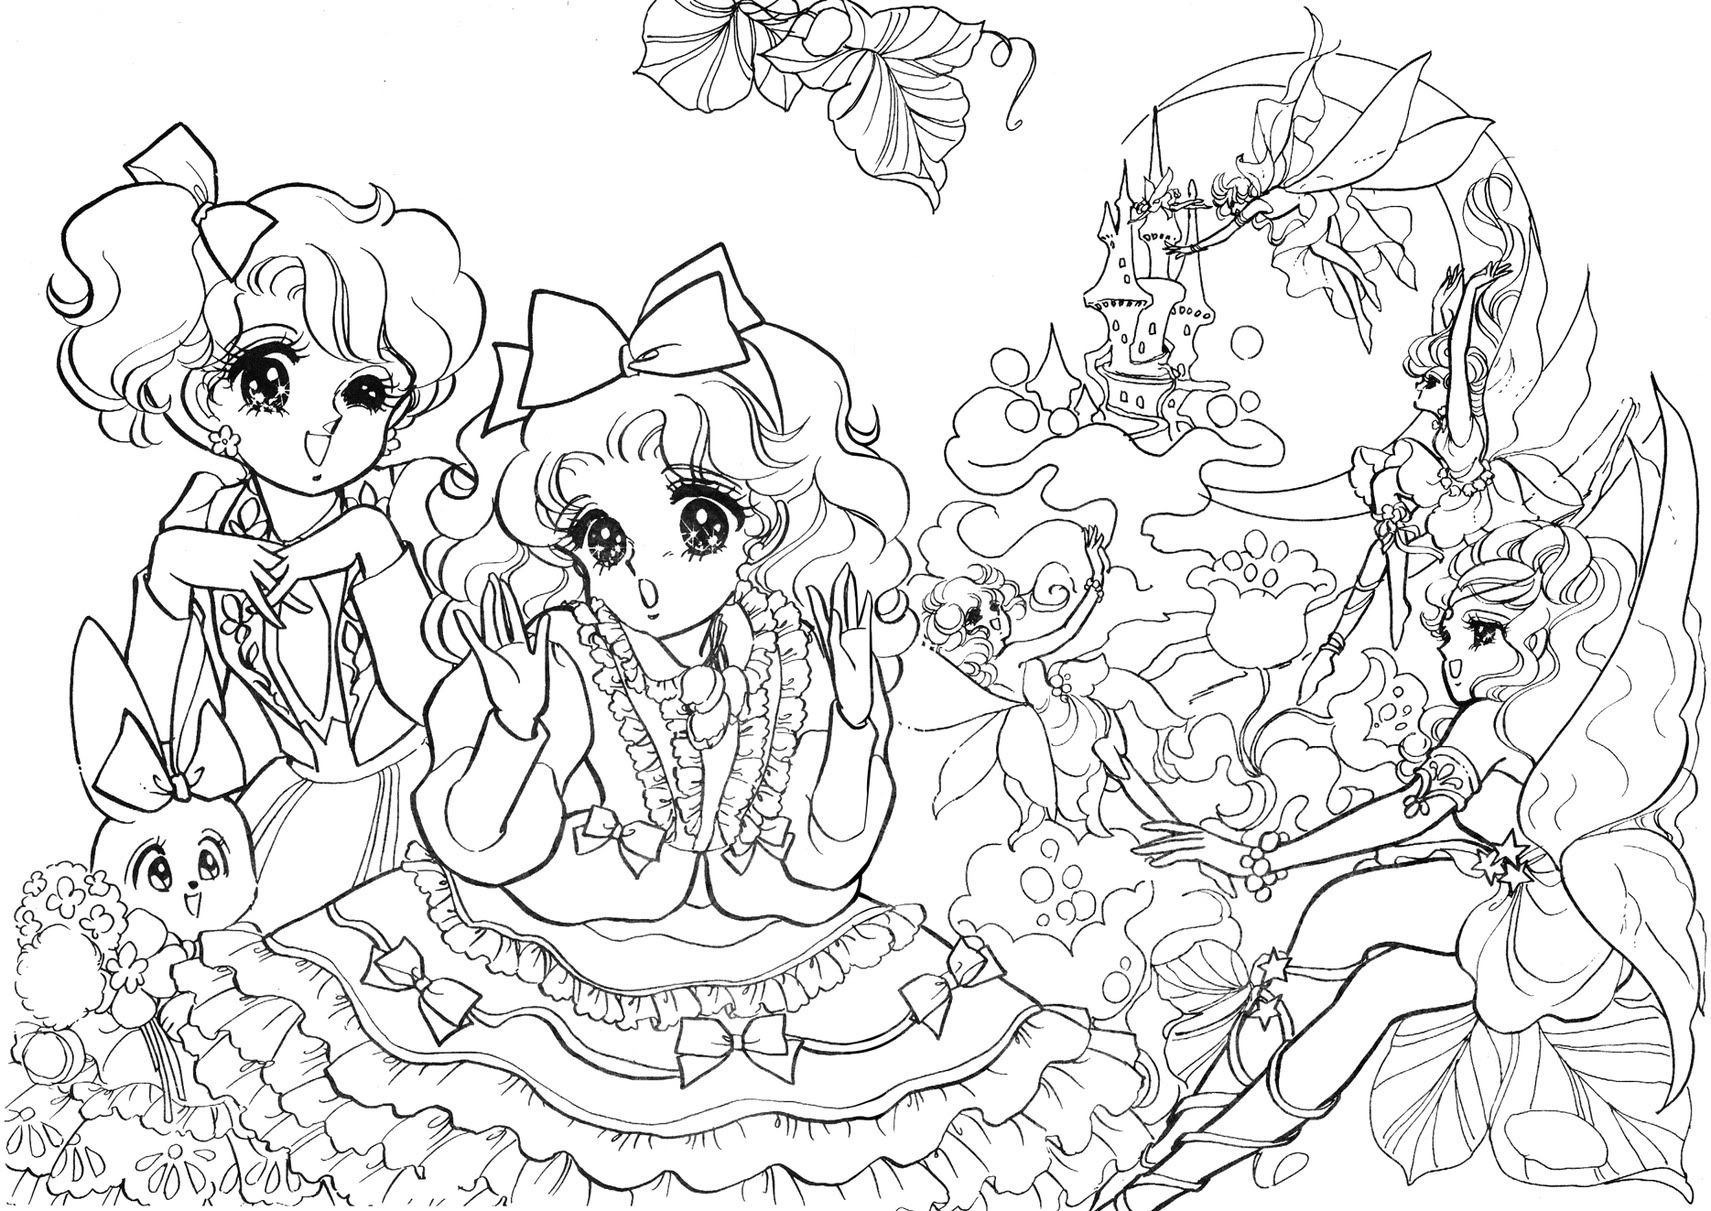 nour serhan uploaded this image to candy parasol colouring book see the album on photobucket - Manga Coloring Book